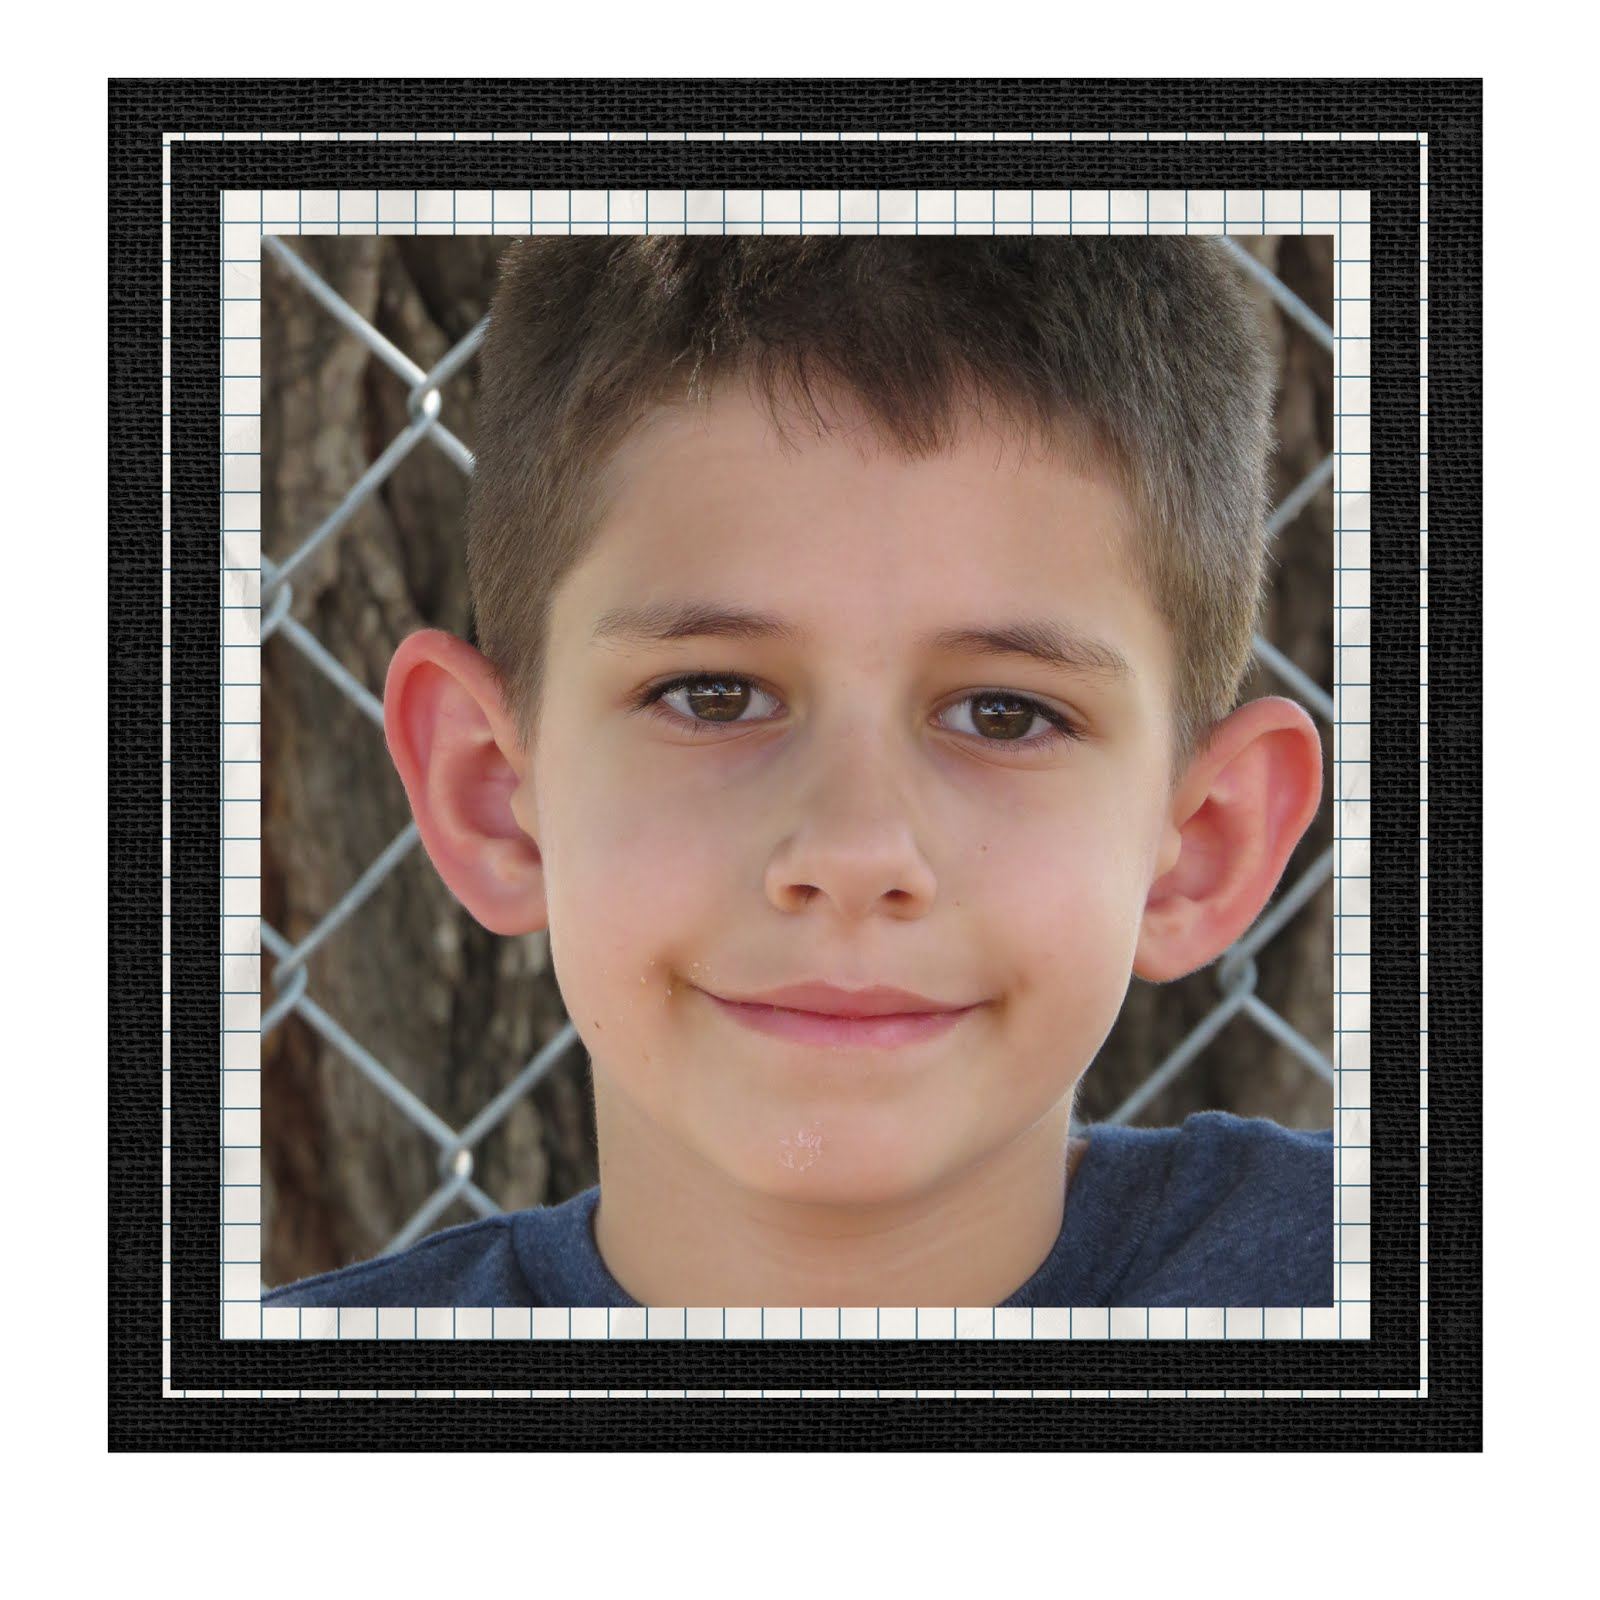 Jacob 2015-2016 School Year Picture